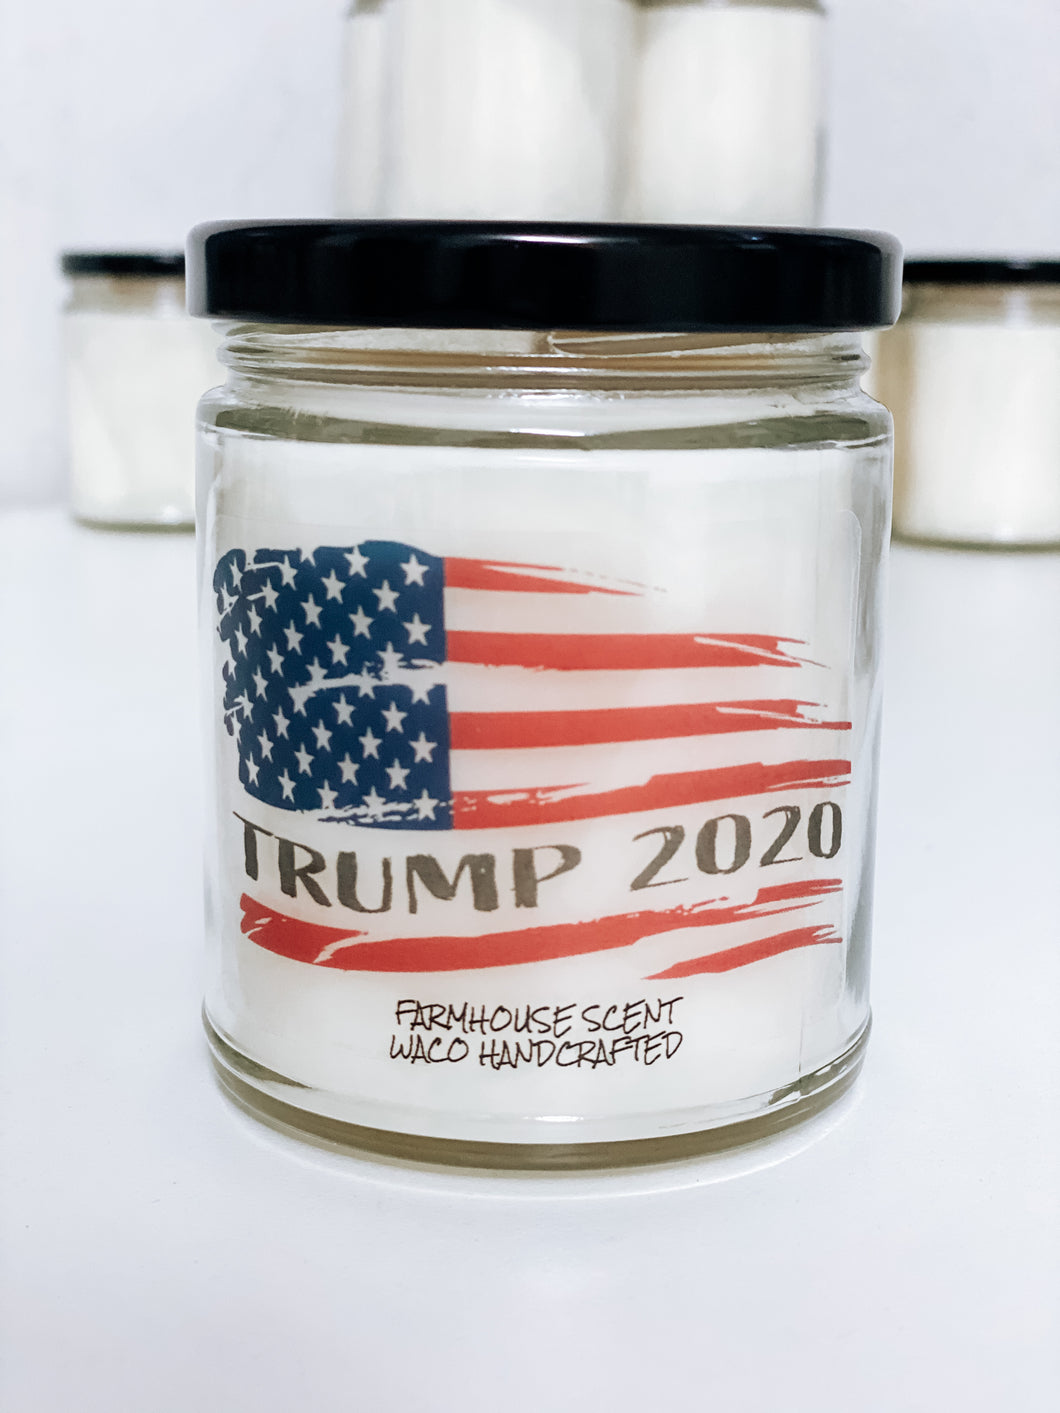 TRUMP 2020 Flag Scented Candle | 9 oz or 16 oz | Novelty Candle - Waco Handcrafted